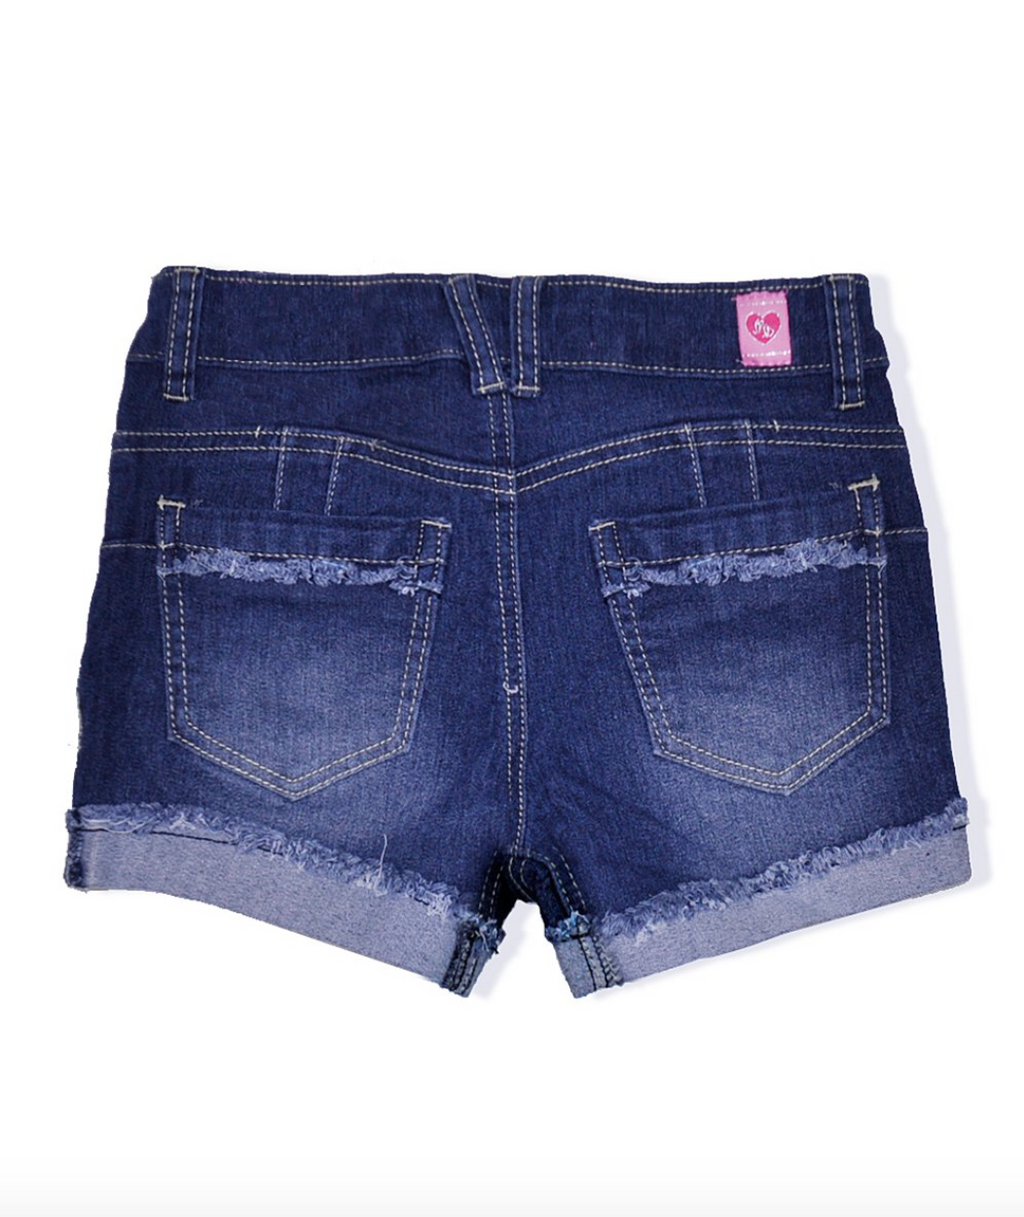 Dark Denim Solid Wash Short w/ Fray Distress